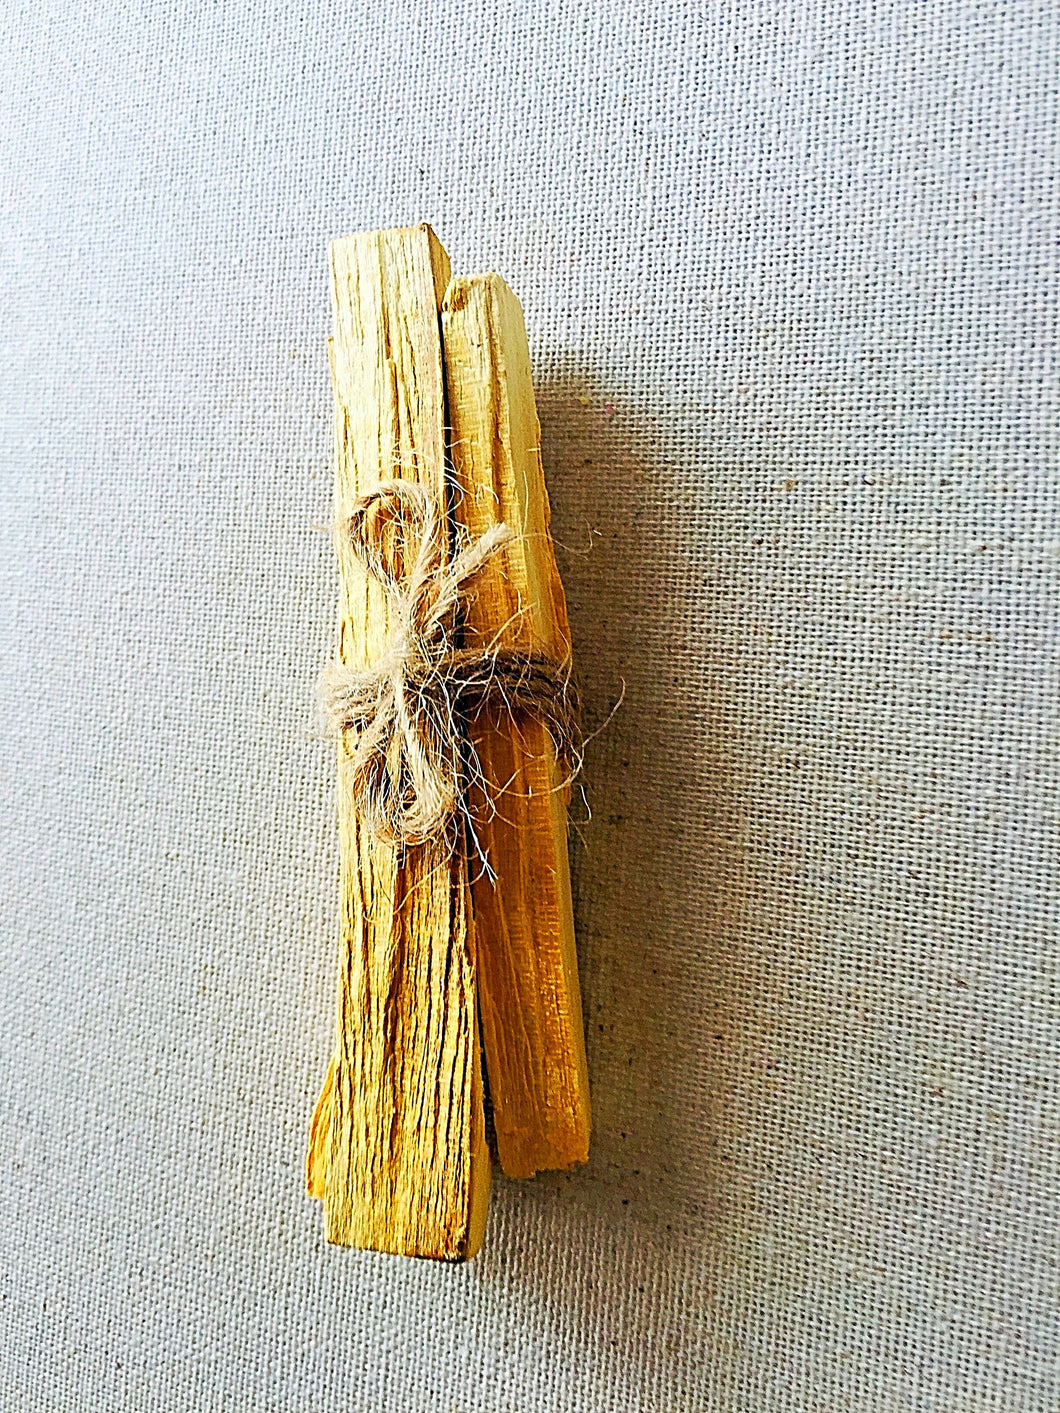 PALO SANTO BUNDLE OF 3